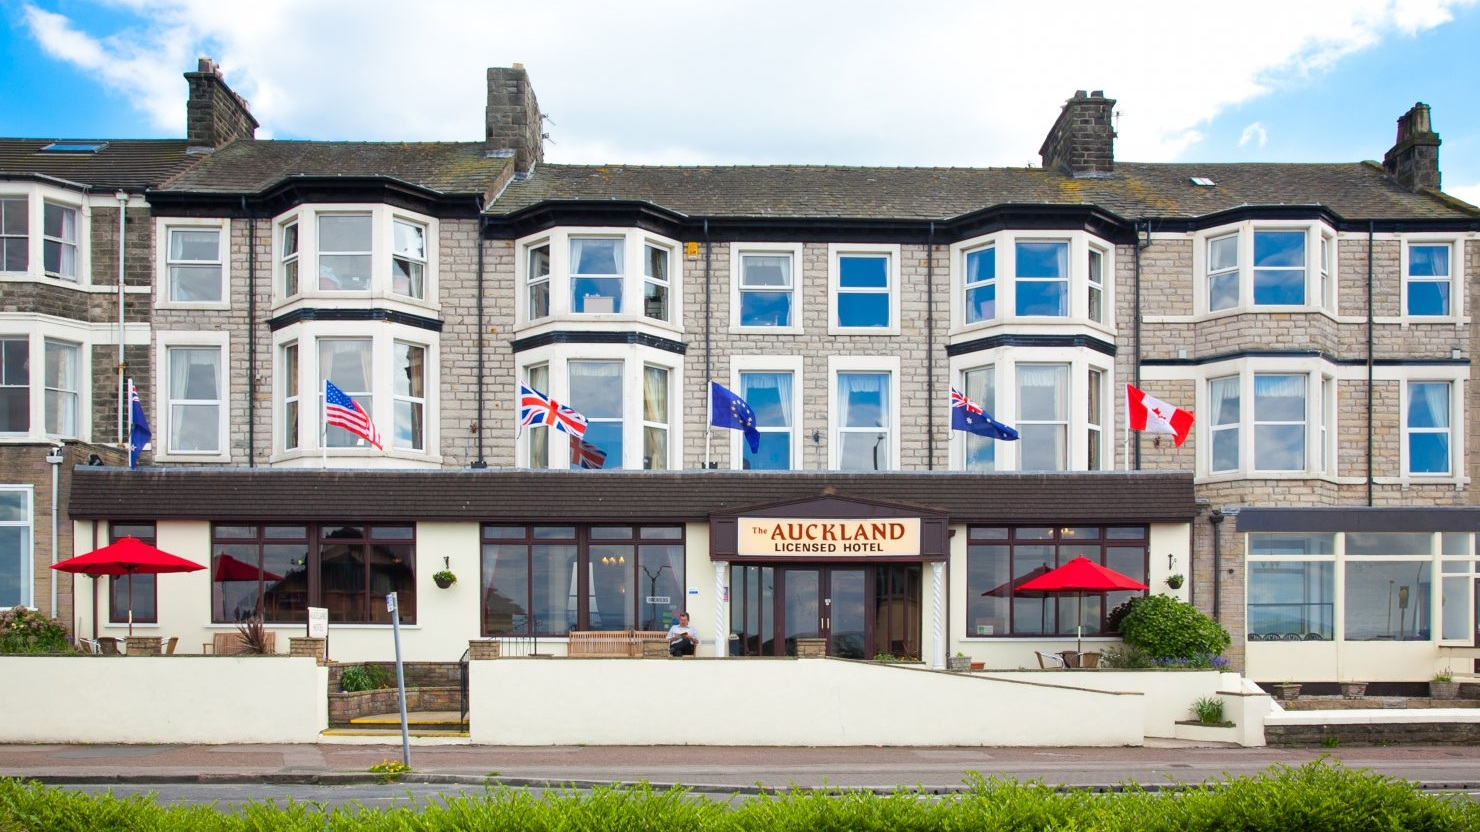 Auckland Hotel Morecambe - 20th April 2020